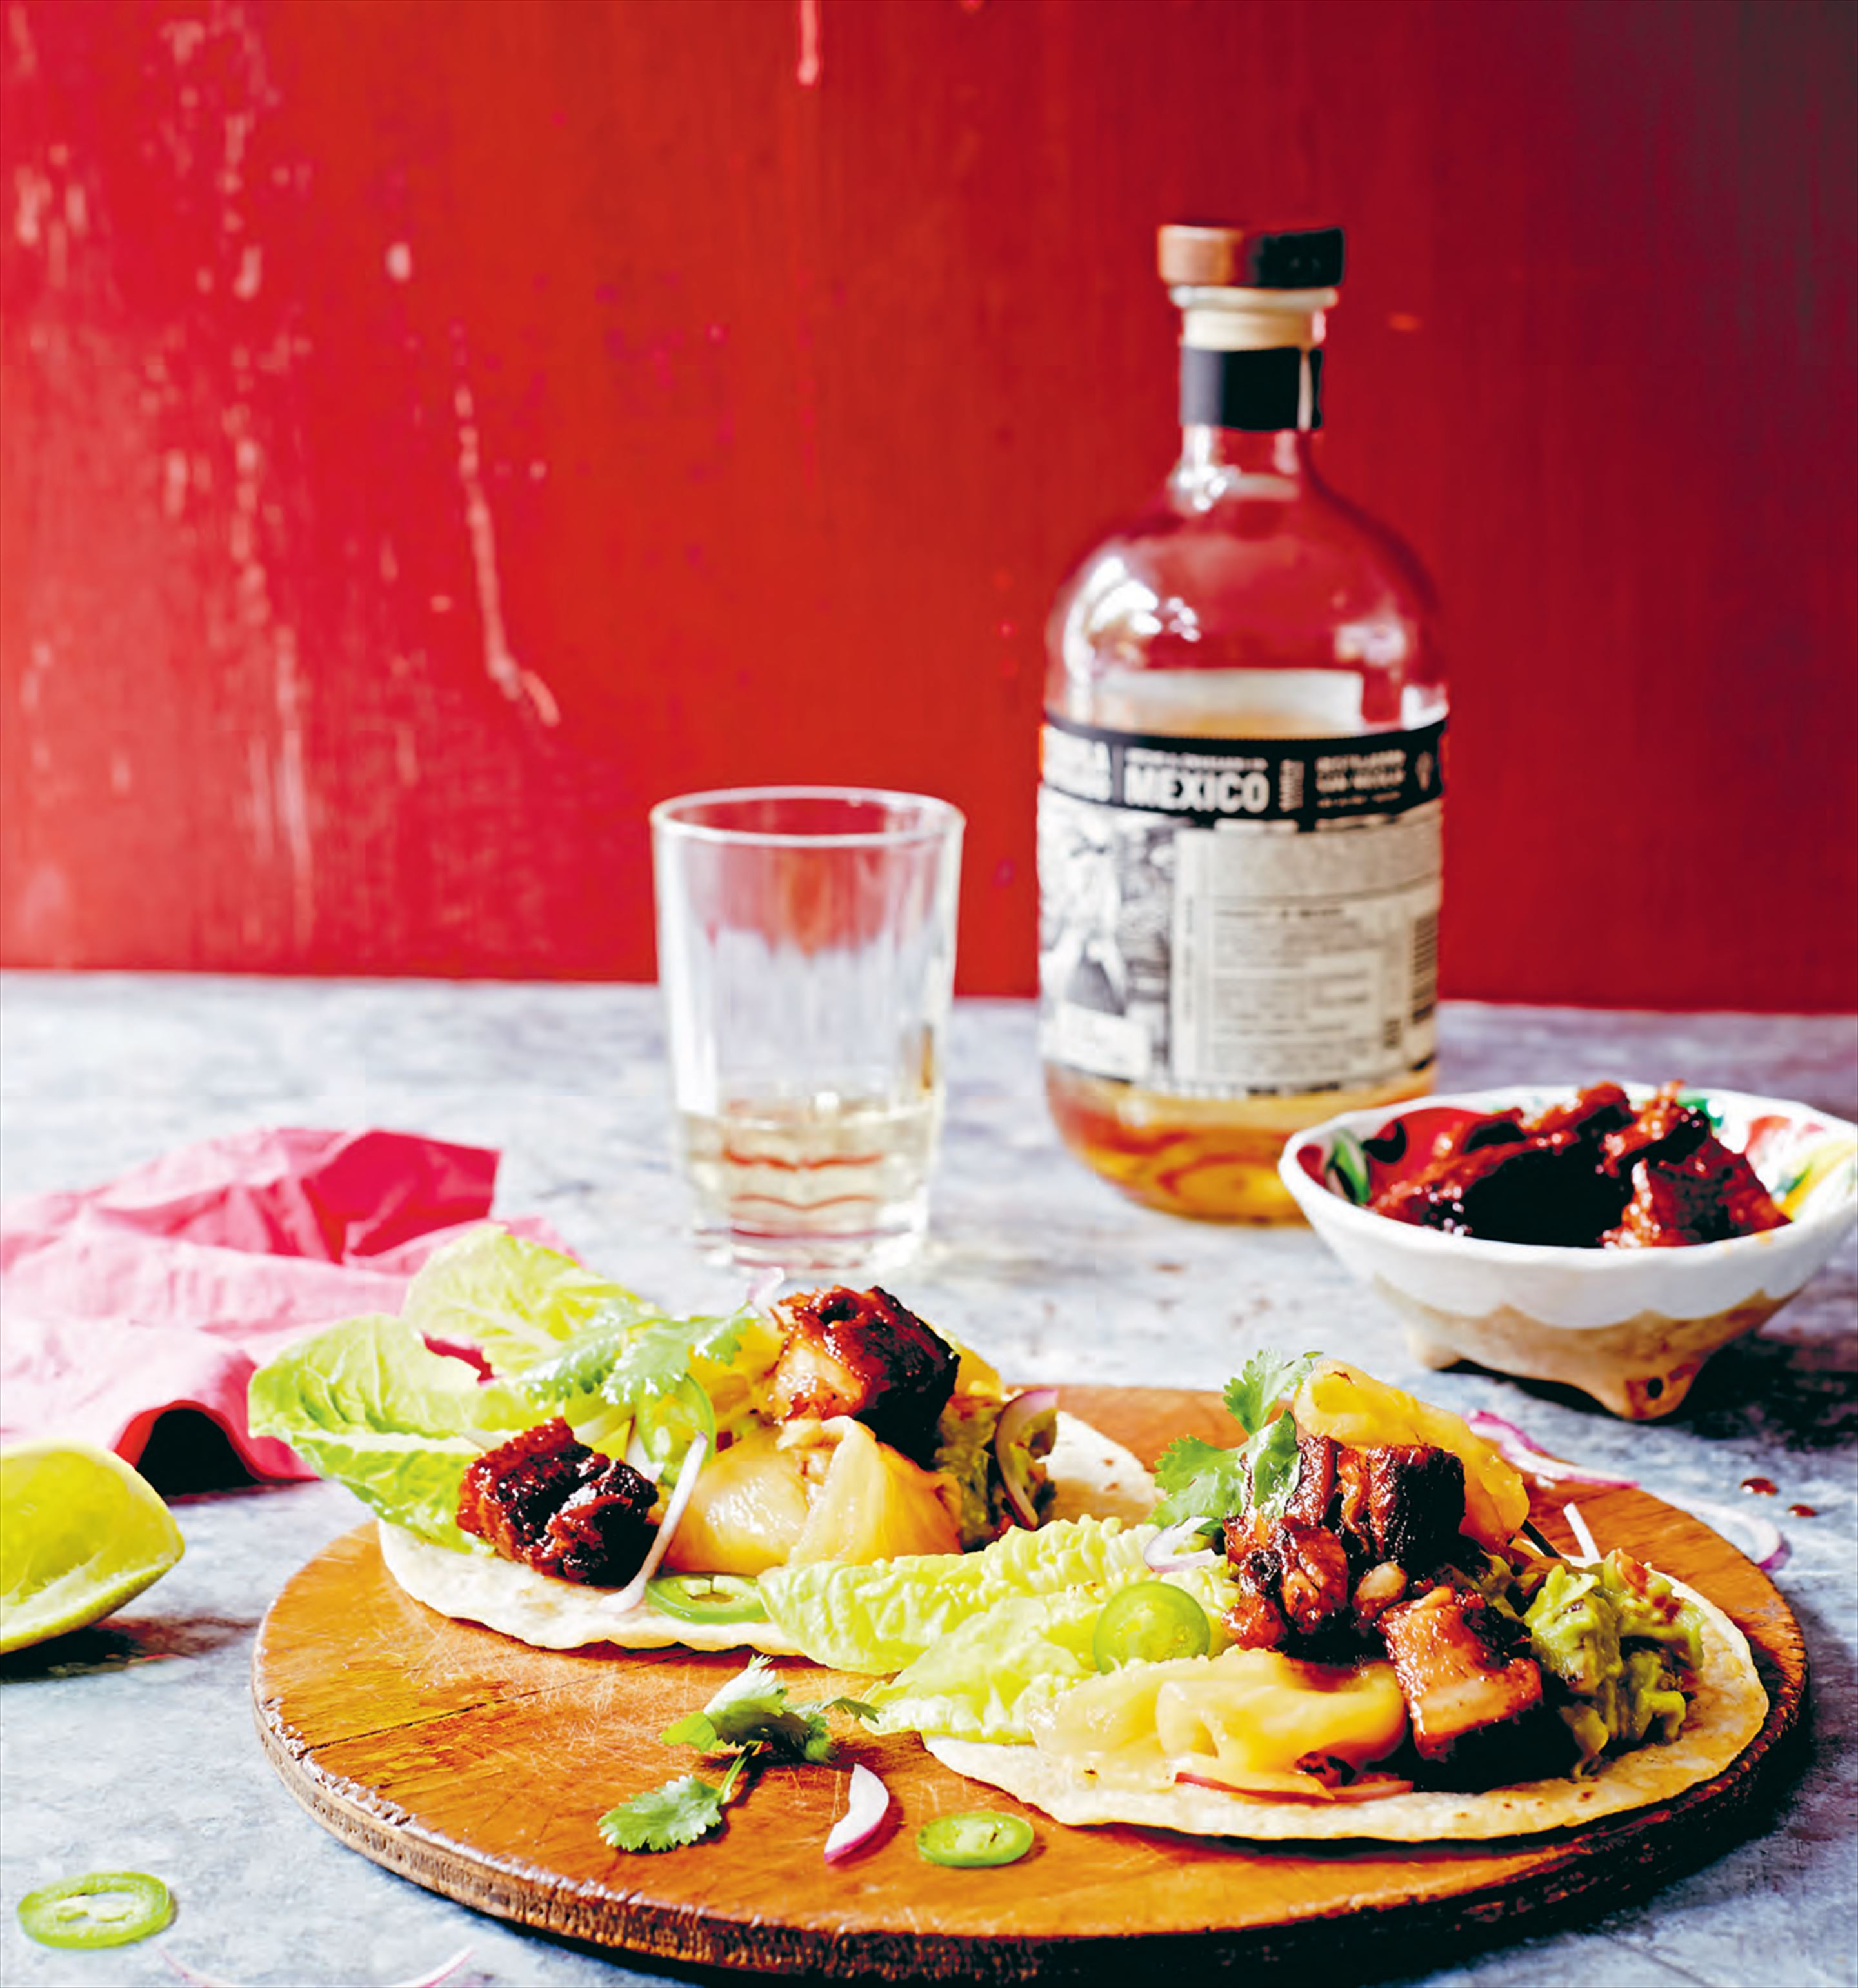 Pork carnitas with pineapple adobo sauce